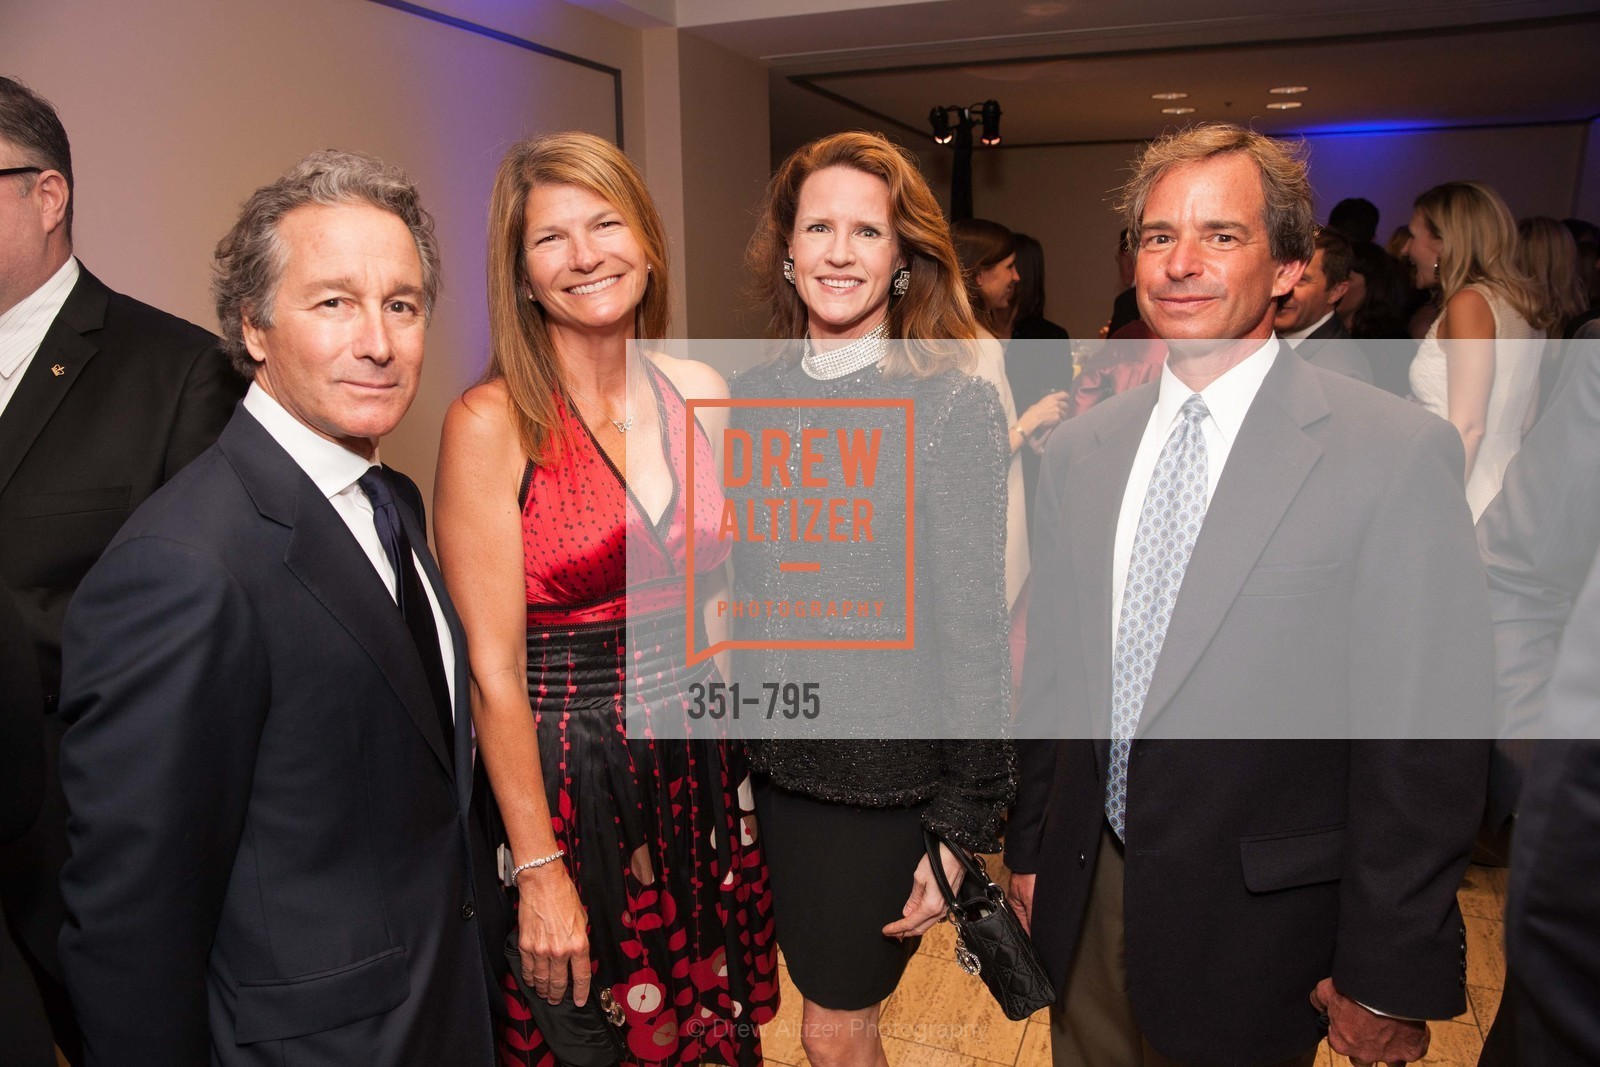 Telly Hoimes, Martha Eman Conte, Barbara Vaughn Hoimes, Jeff Rafner, COMPASS FAMILY SERVICES Annual Spring Benefit:  Every Family Needs A Home, US, April 23rd, 2015,Drew Altizer, Drew Altizer Photography, full-service agency, private events, San Francisco photographer, photographer california